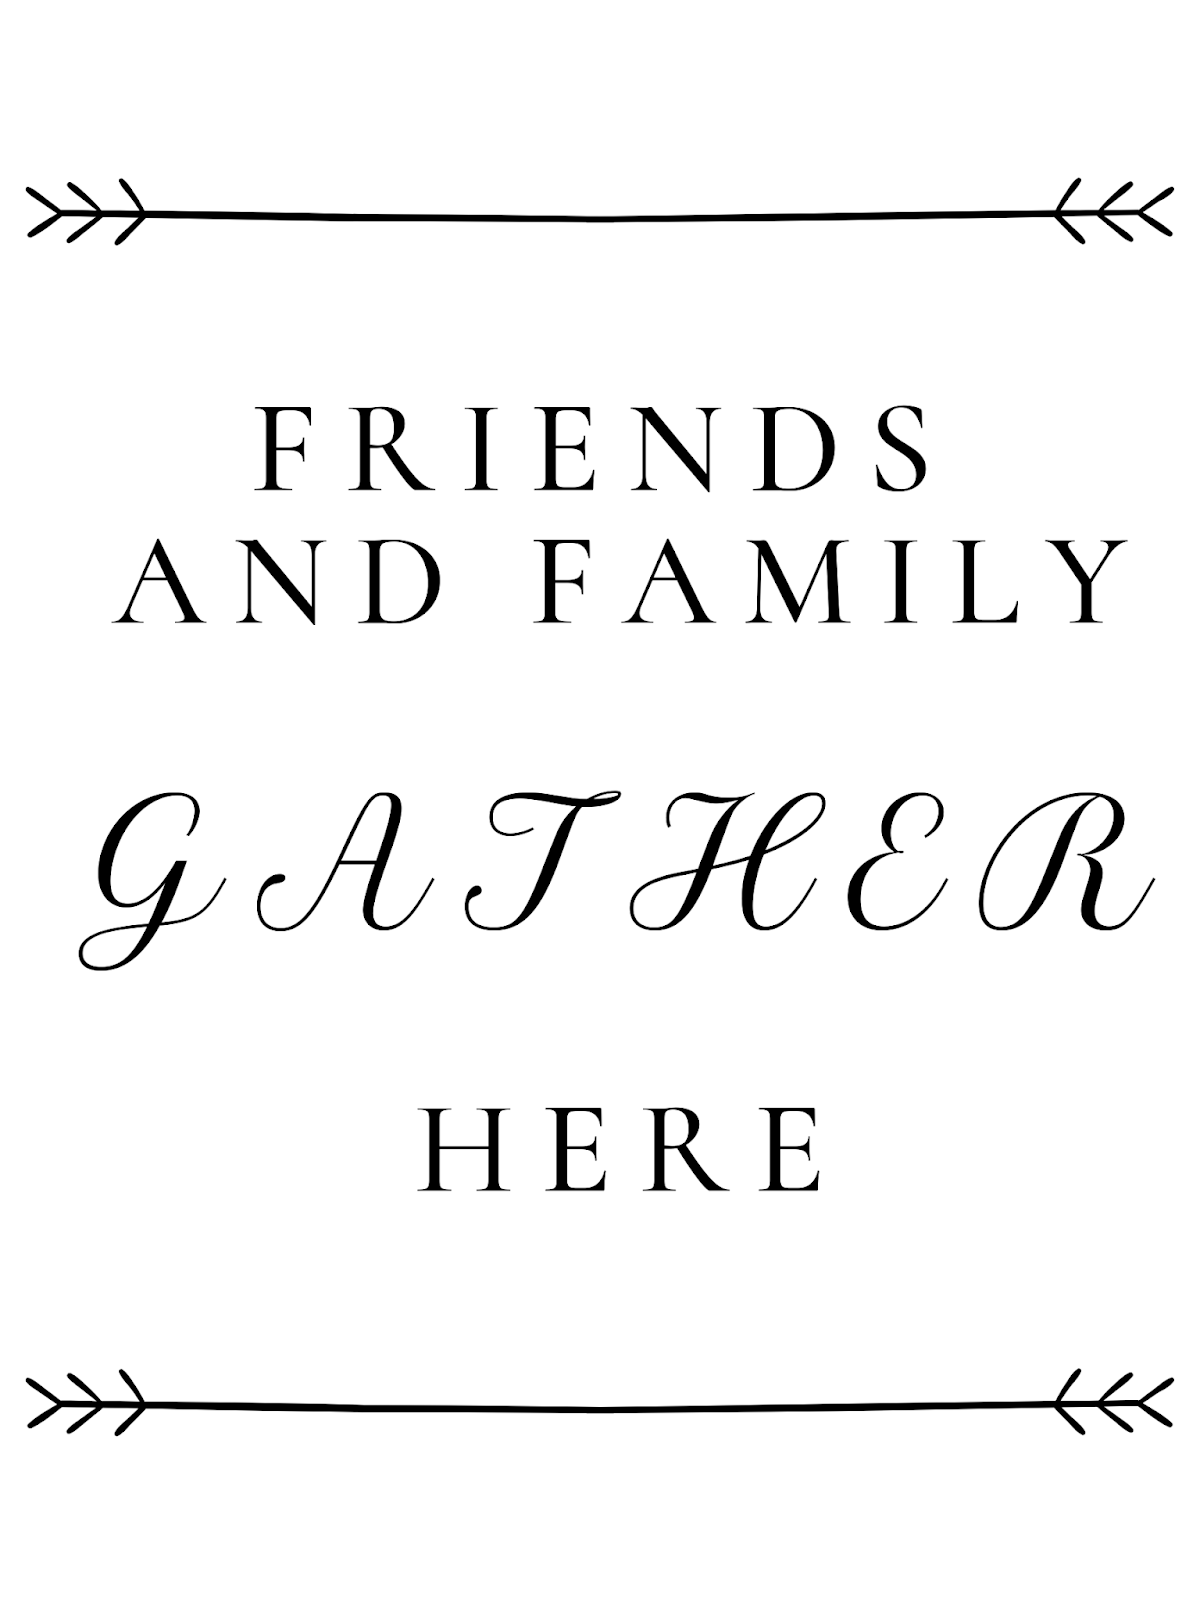 photograph about Gather Printable named Free of charge Printable Pals and Loved ones Acquire Right here Farmhouse